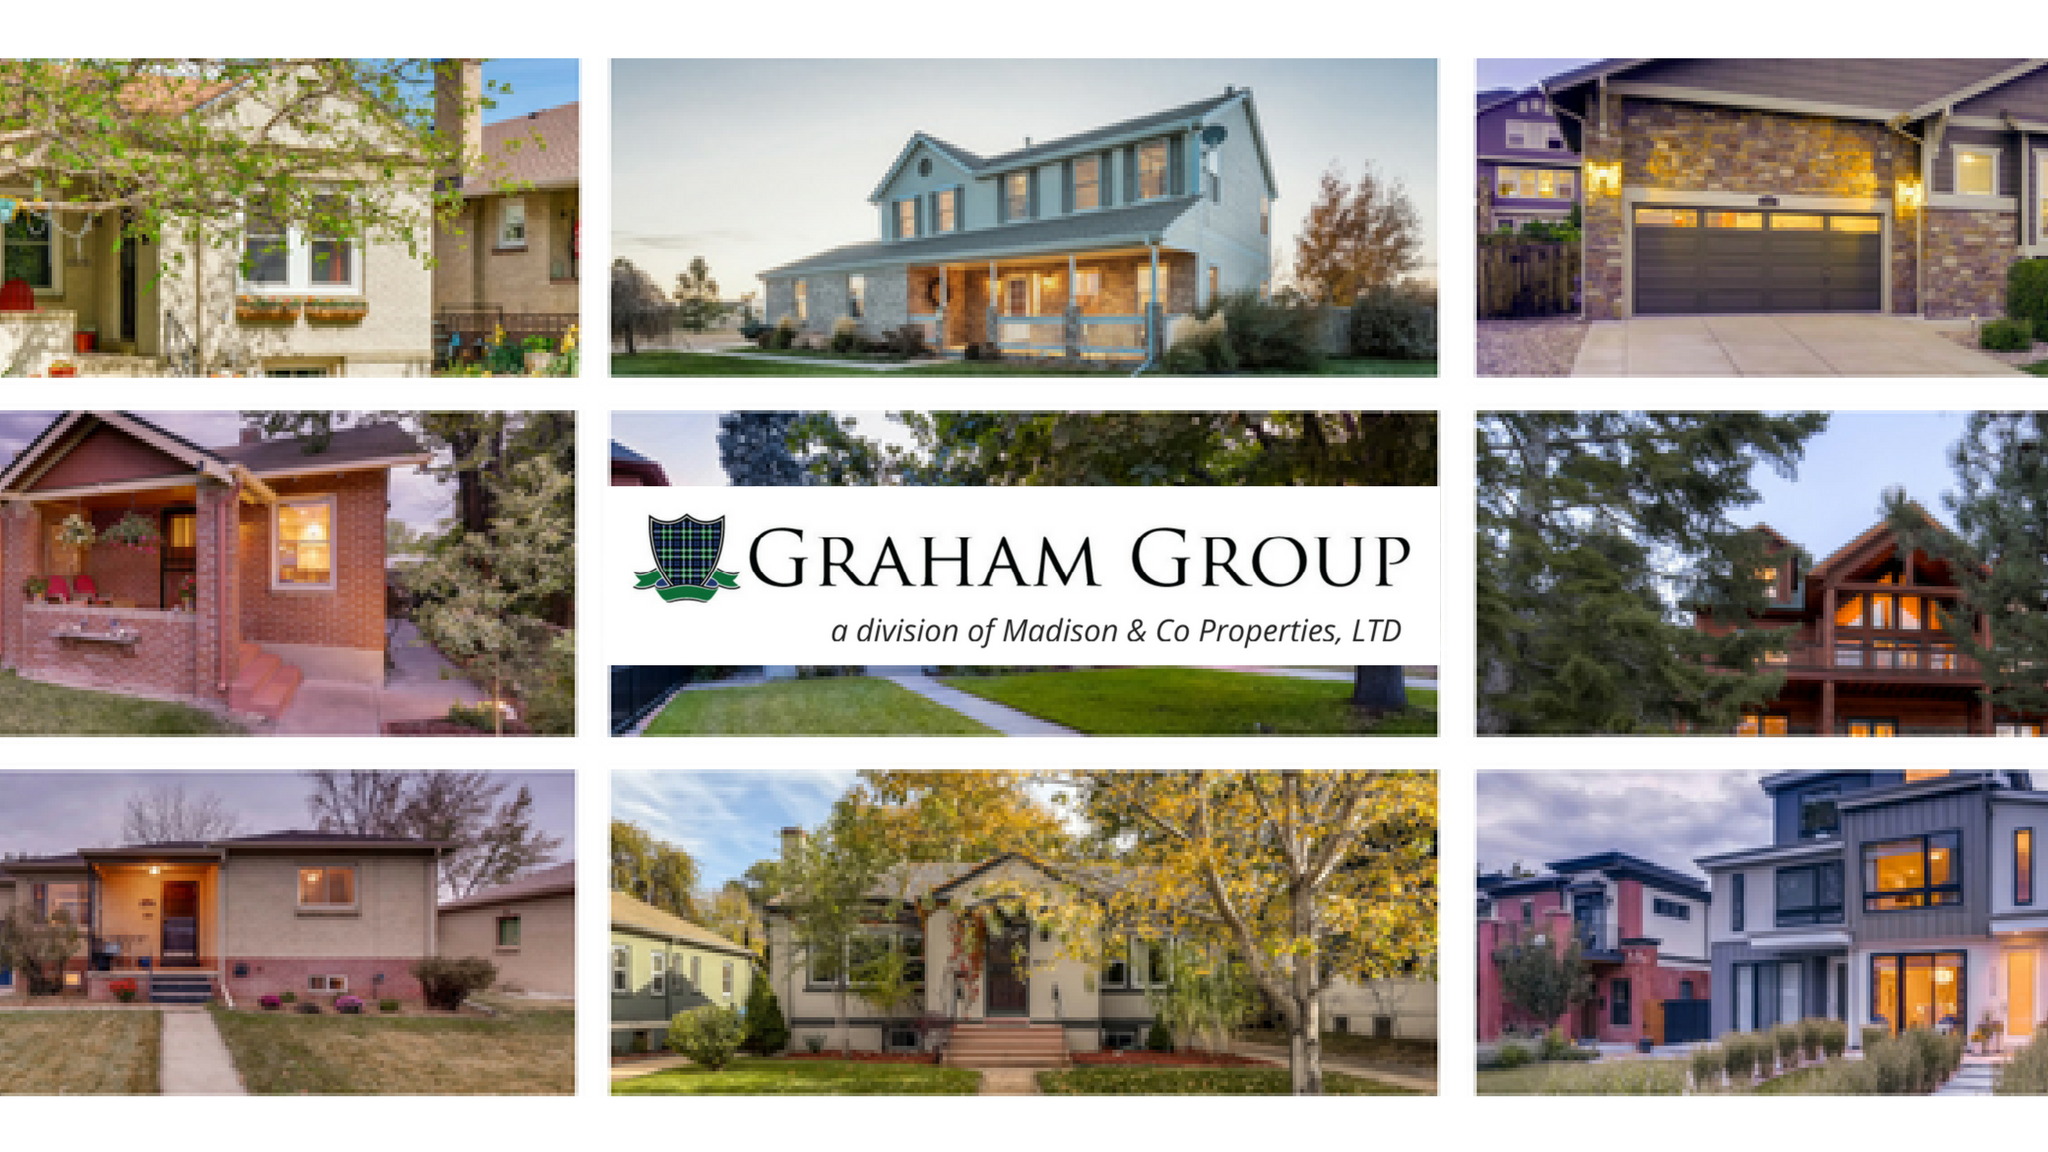 Graham Group Real Estate    Euan Graham is a Realtor in the Denver Metro area. He is dedicated to building a true relationship and being your Realtor for life! Euan truly listens and goes above and beyond to meet all of your real estate needs.